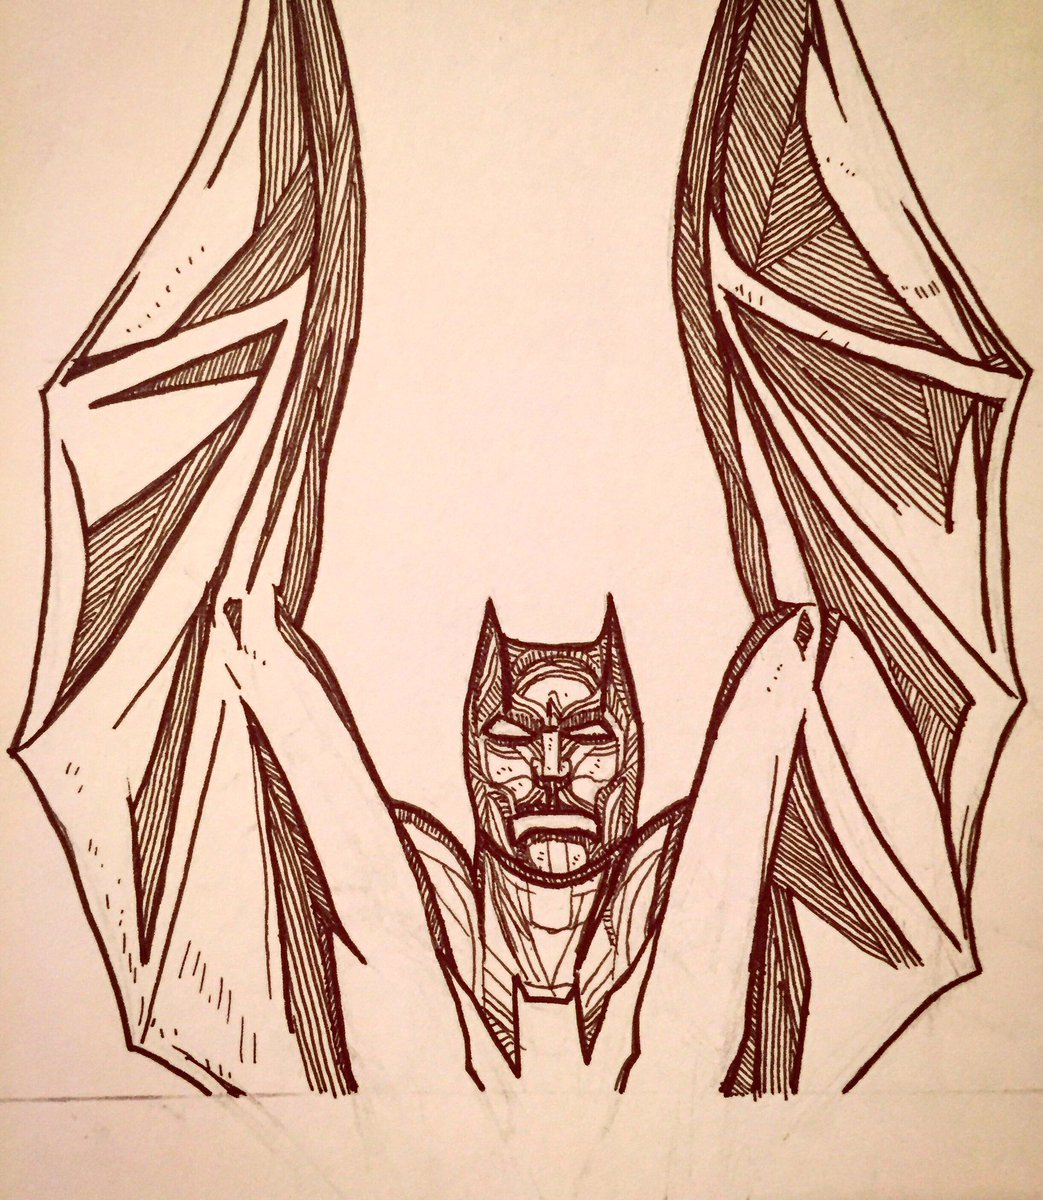 Because the other day was Batman Day, here's some Batman Beyond action. #BatmanDay #Batman #batmanbeyond https://t.co/3P4DHyaKTG